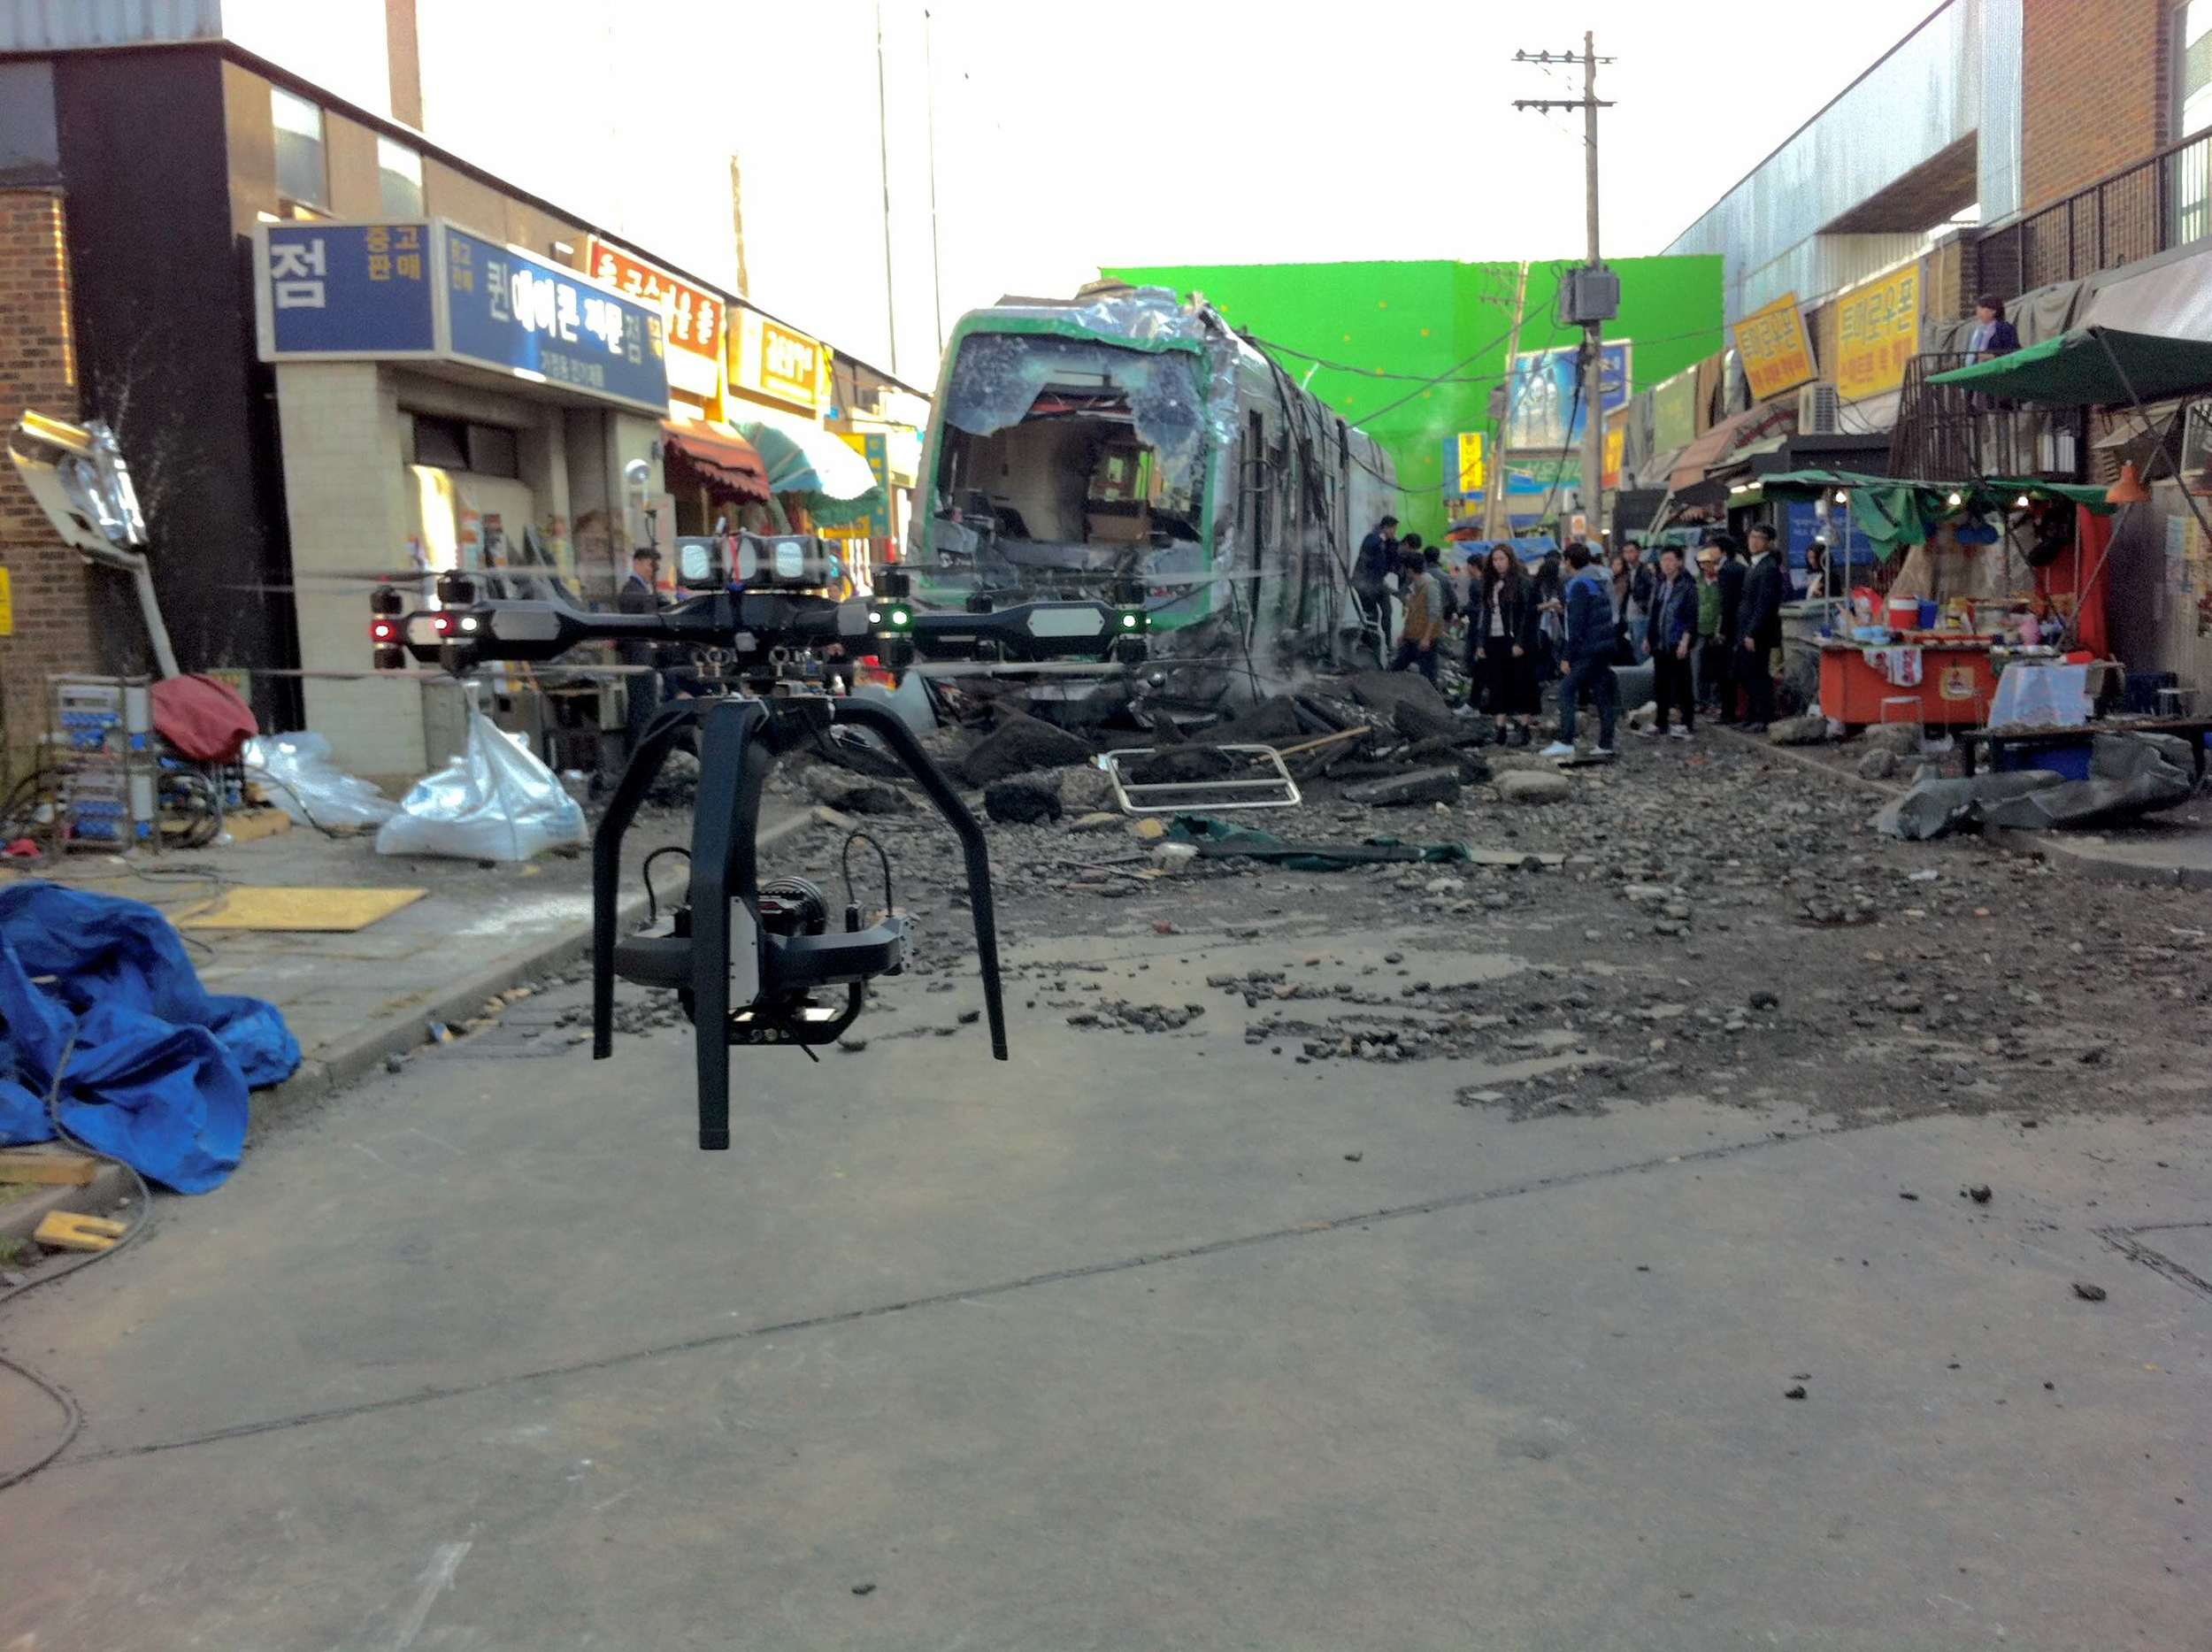 Aerigon on the set of  Avengers: Age of Ultron.